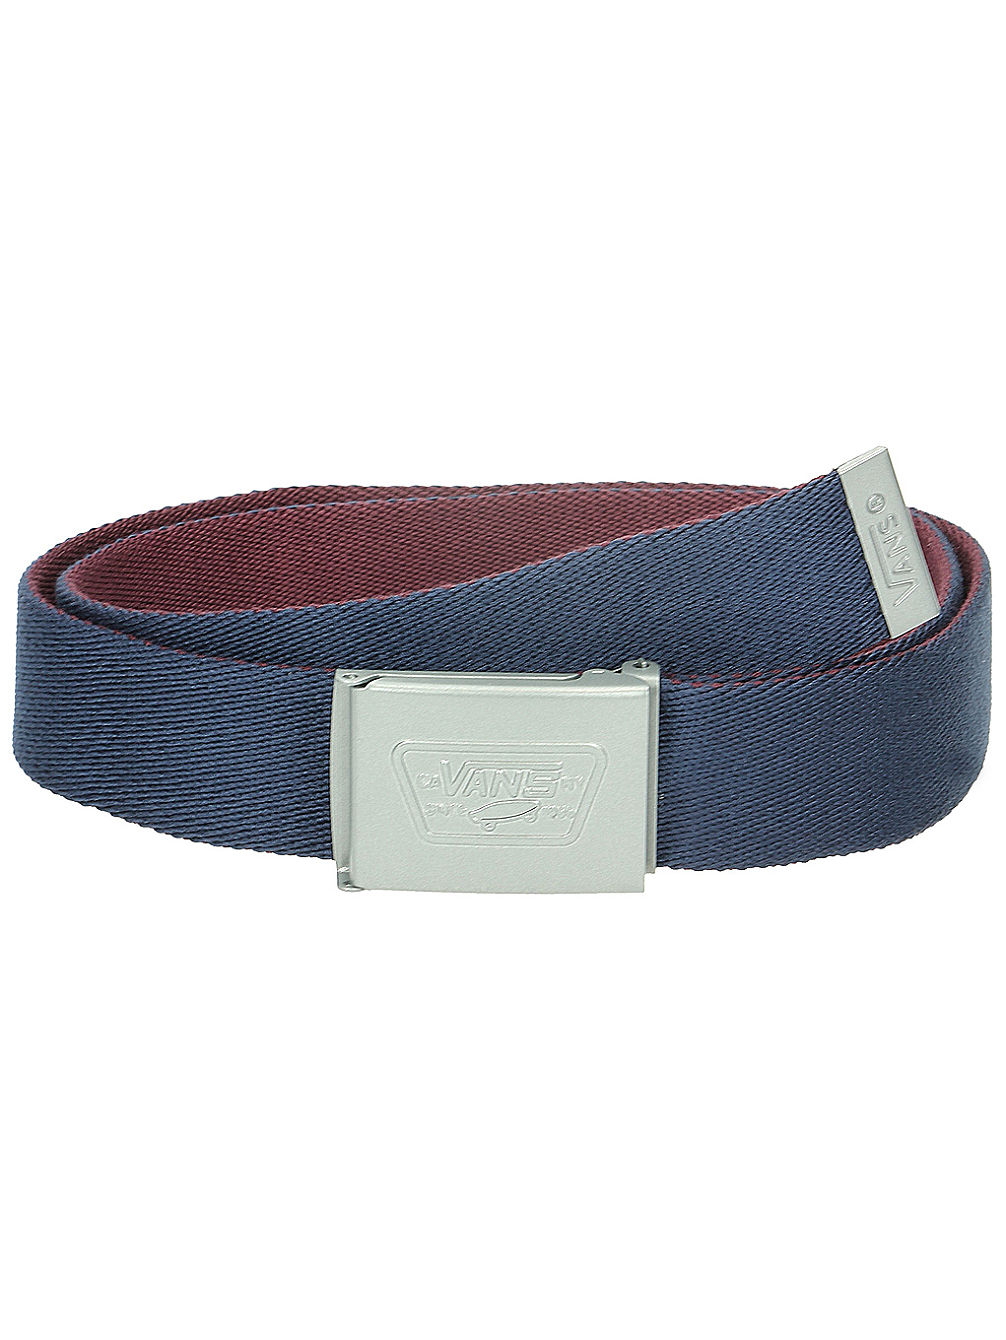 vans-knox-web-belt